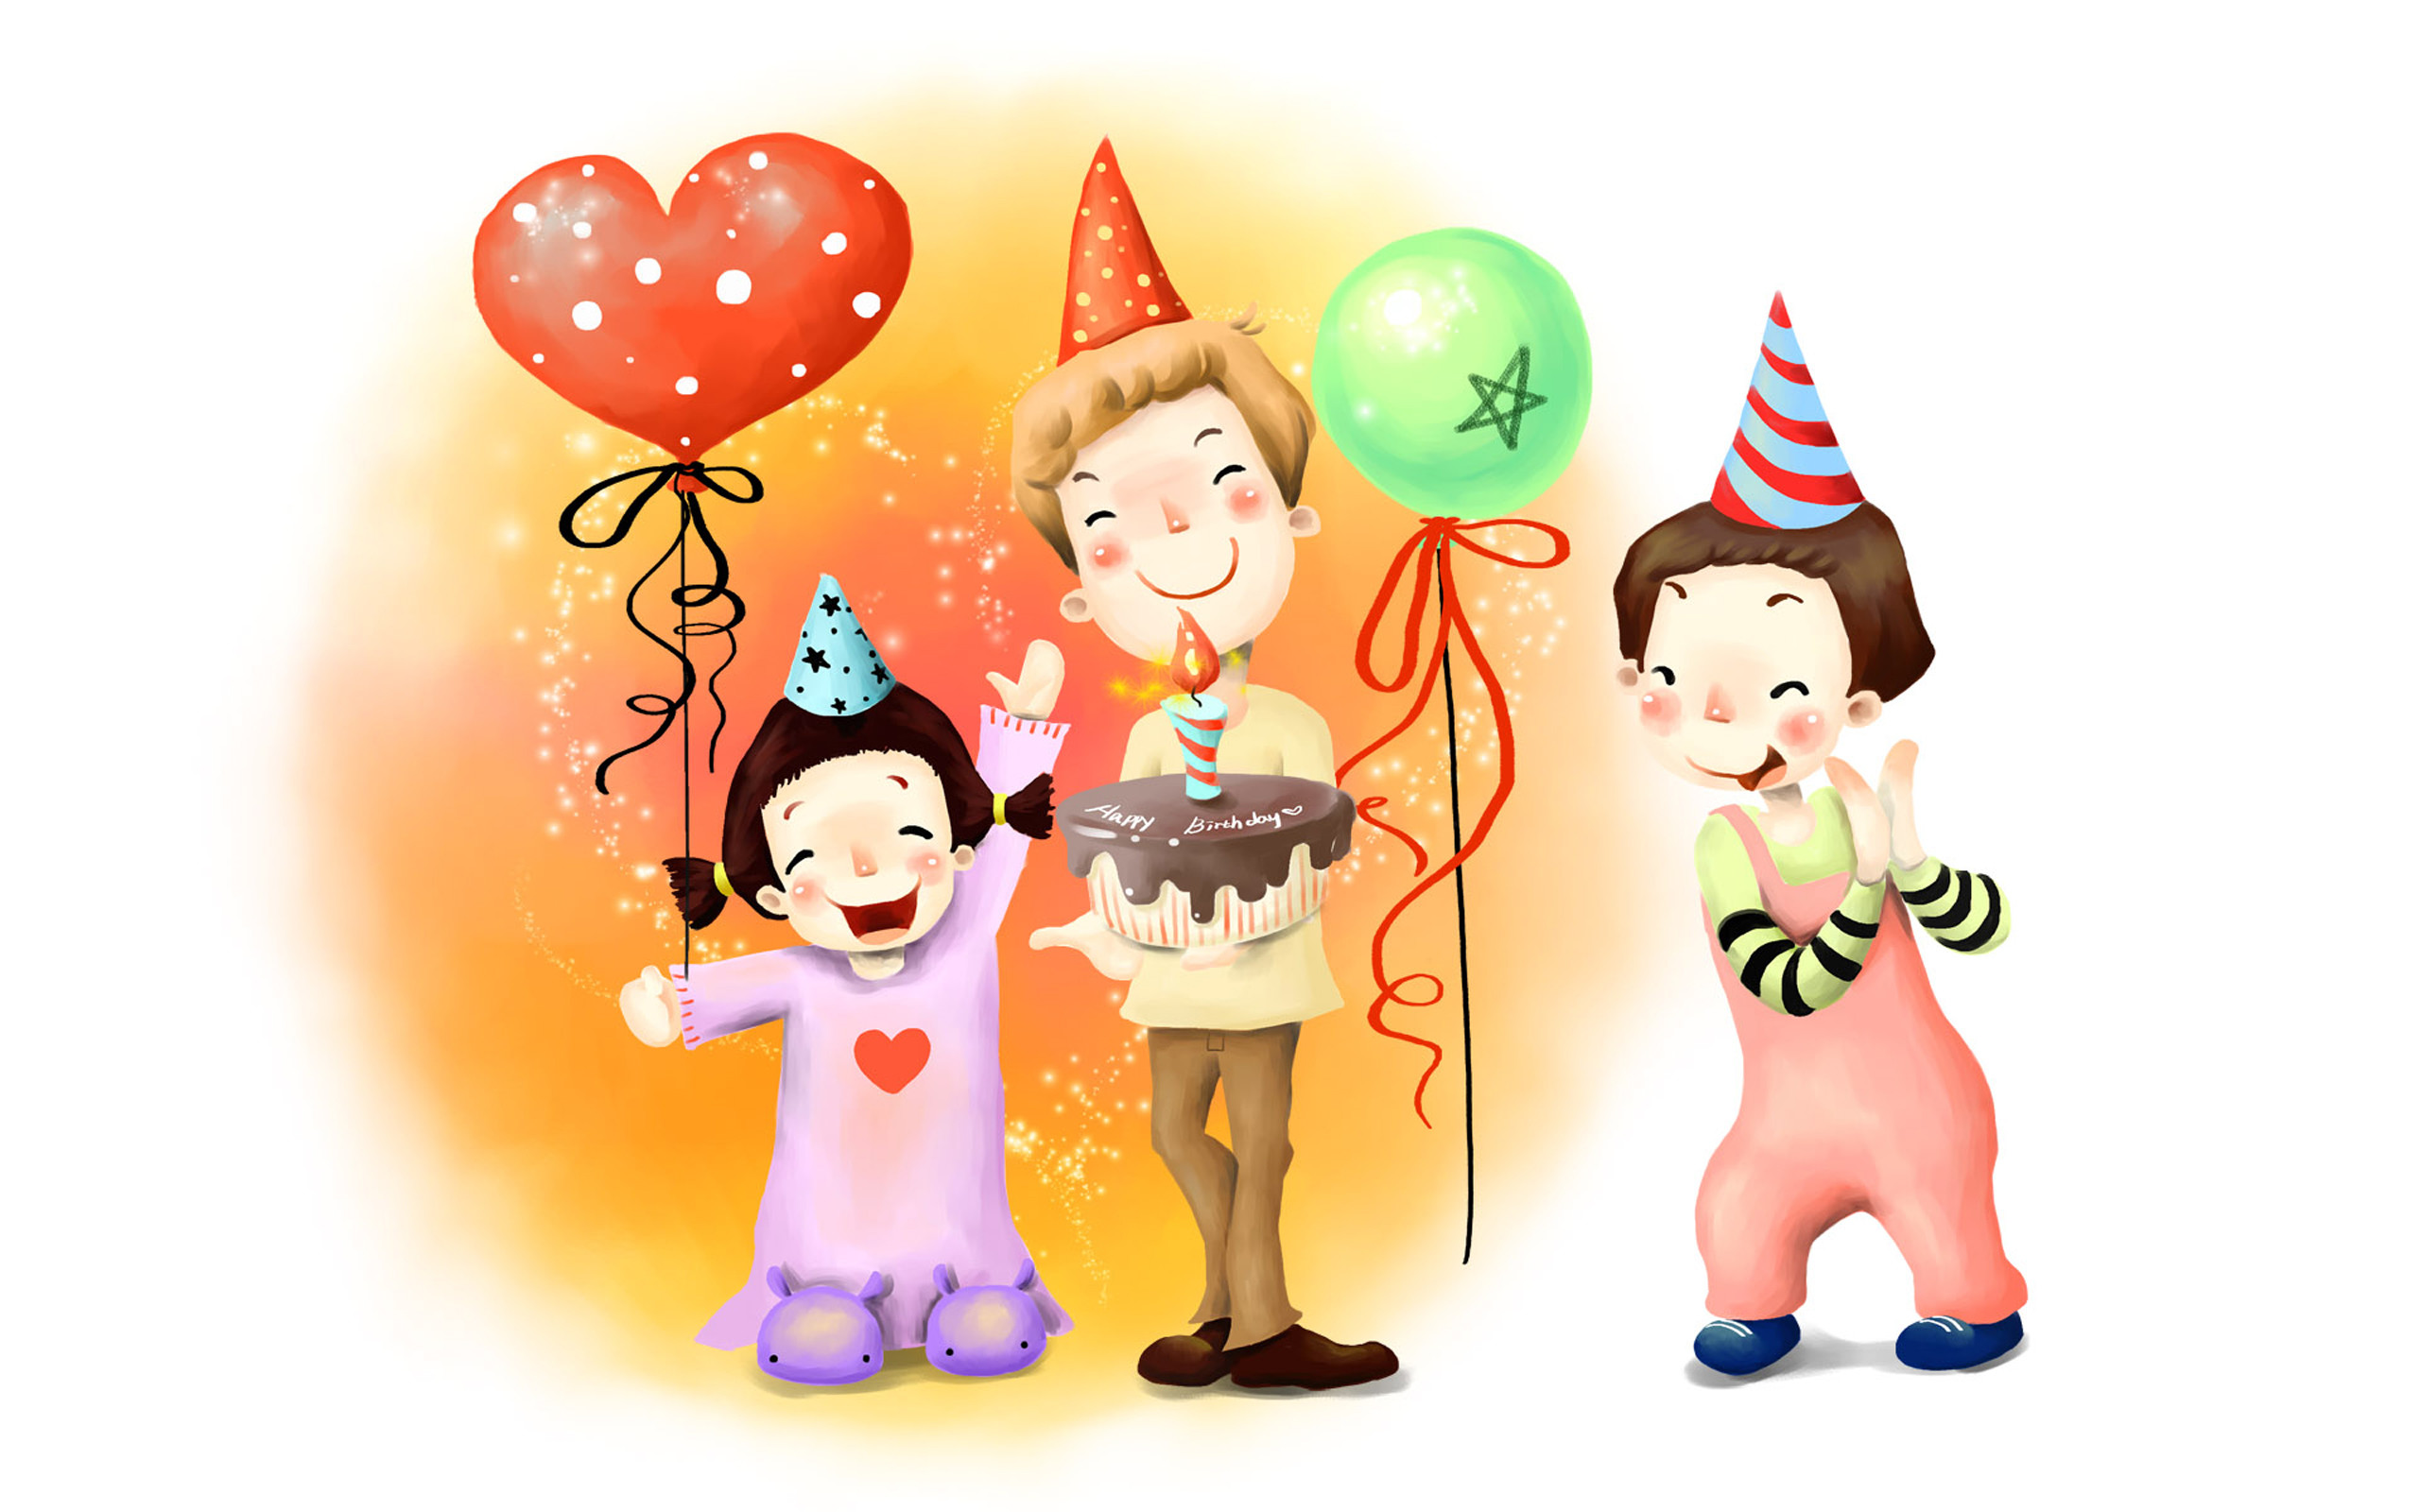 Res: 2560x1600, Funny Cartoons Birthday 21 Desktop Wallpaper